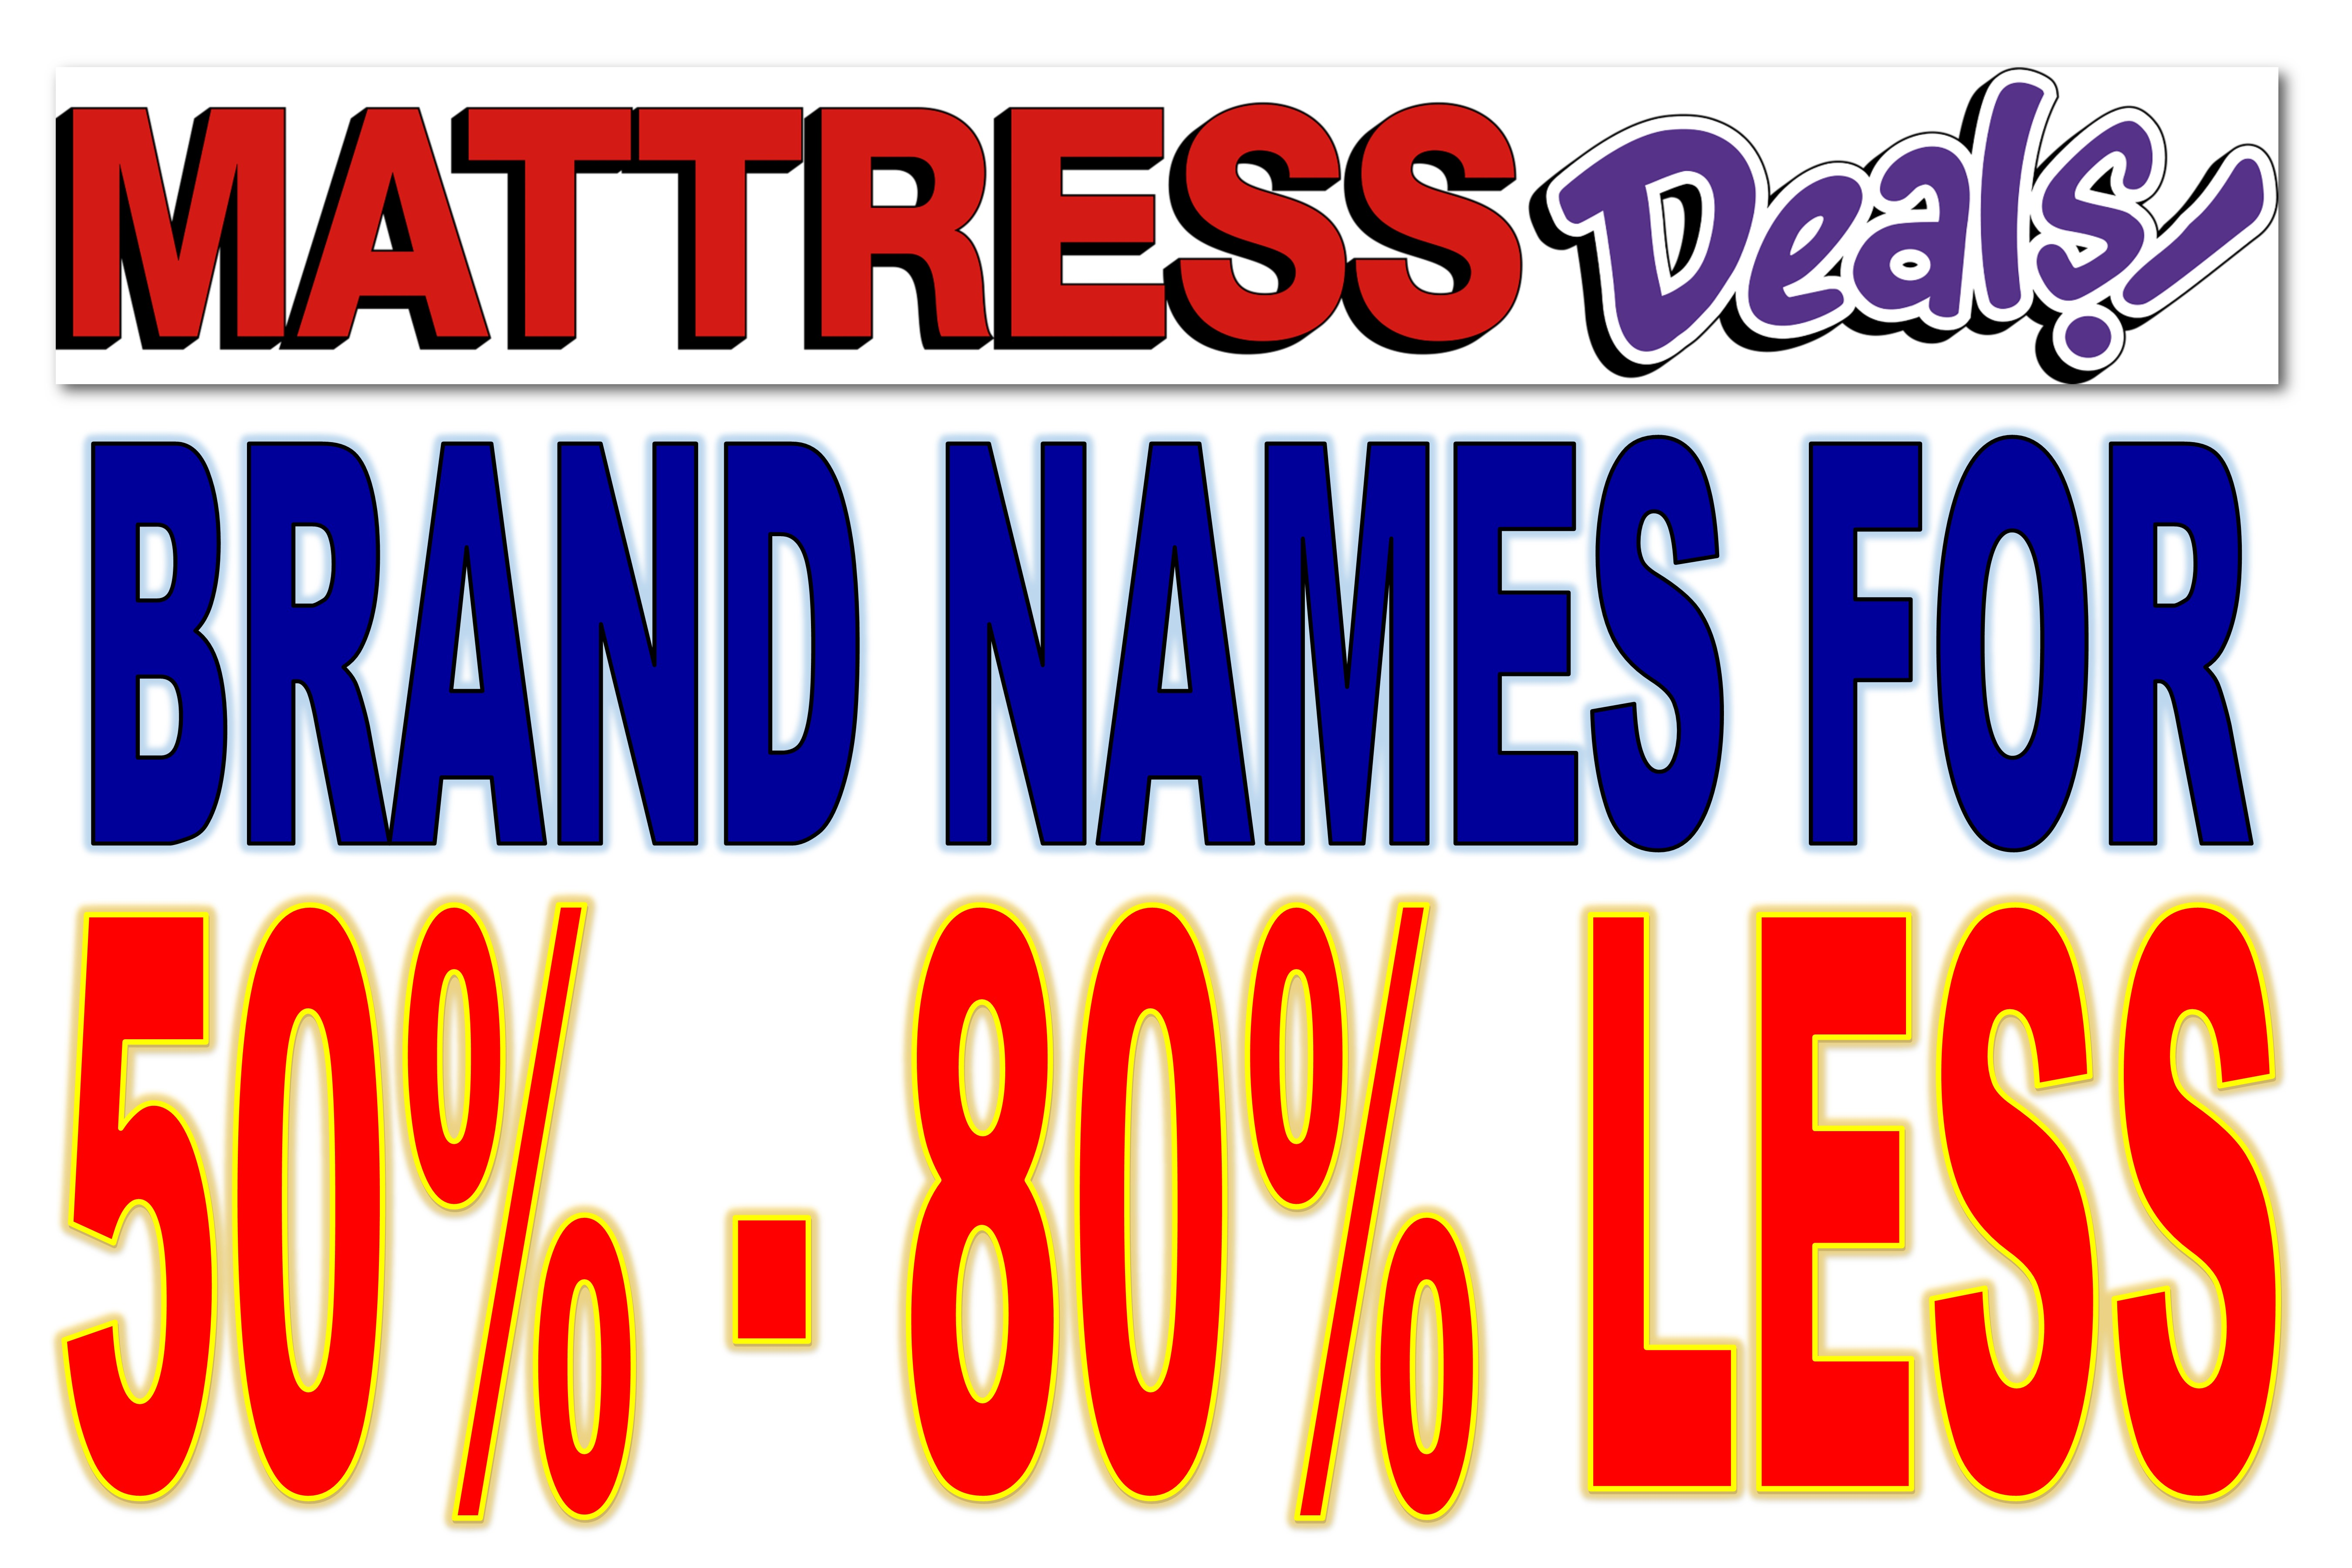 Mattress Deals image 29